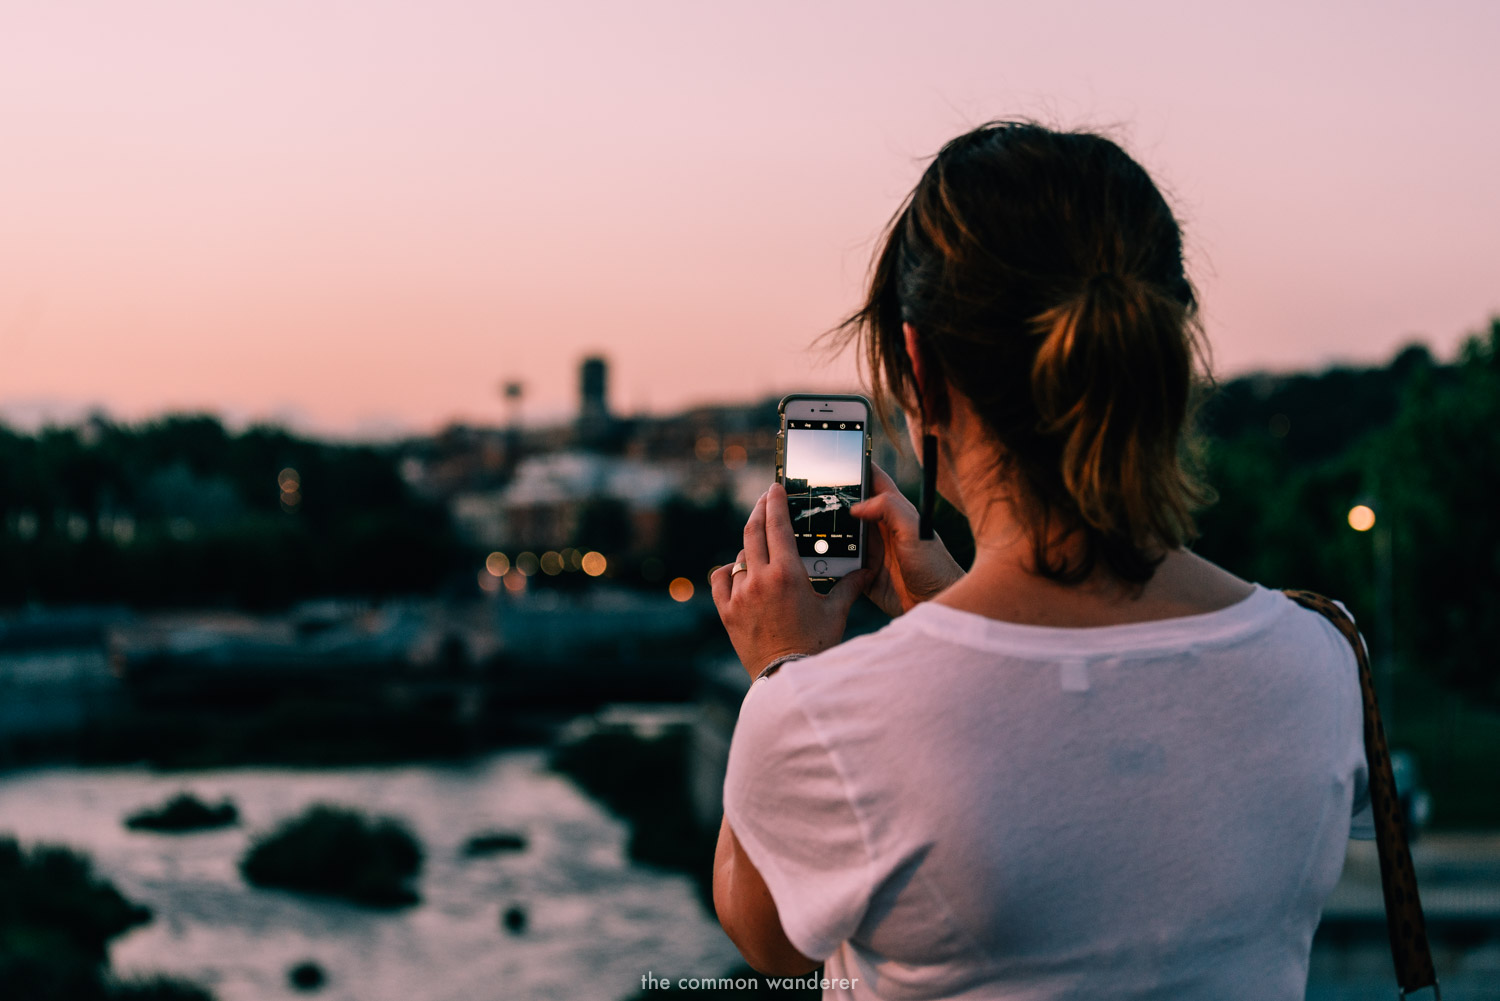 Our top tips to improve your smartphone photography game